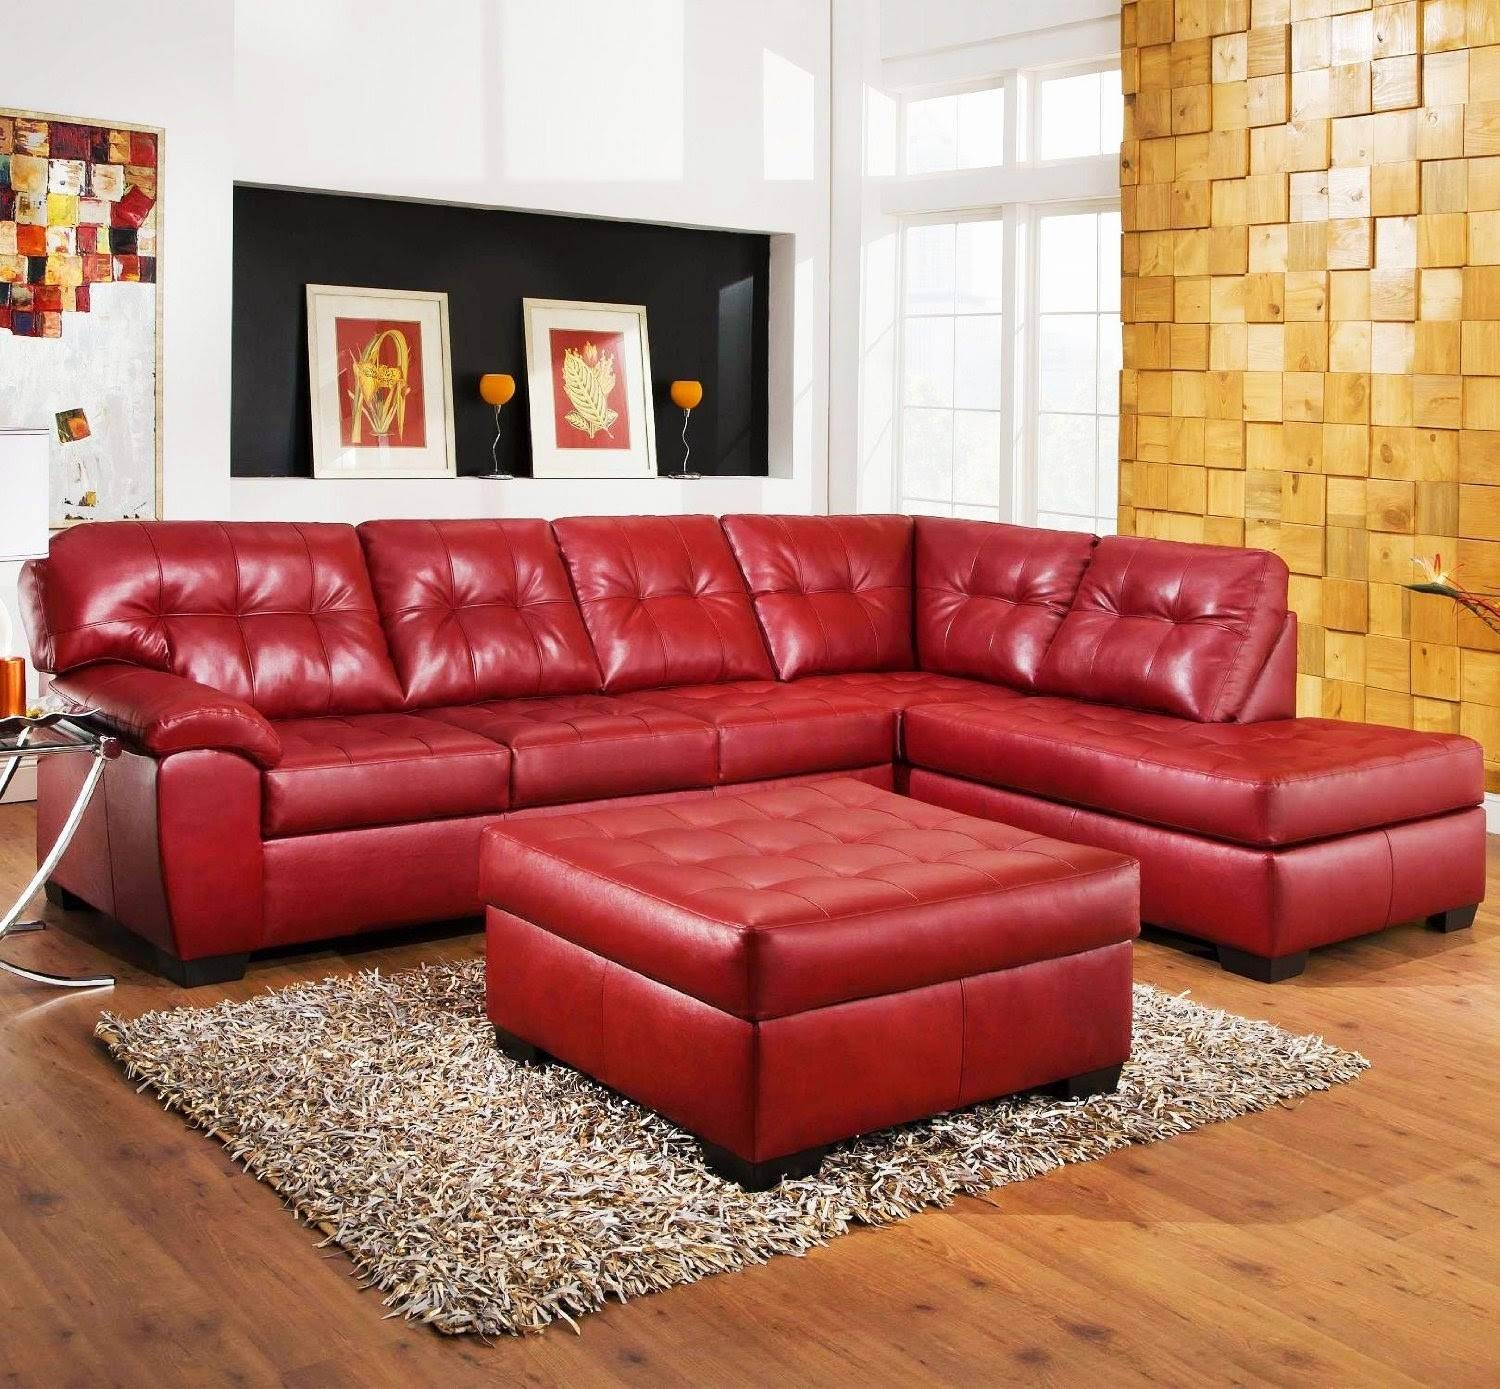 Red Couch: Red Leather Sectional Couch throughout Red Microfiber Sectional Sofas (Image 14 of 30)